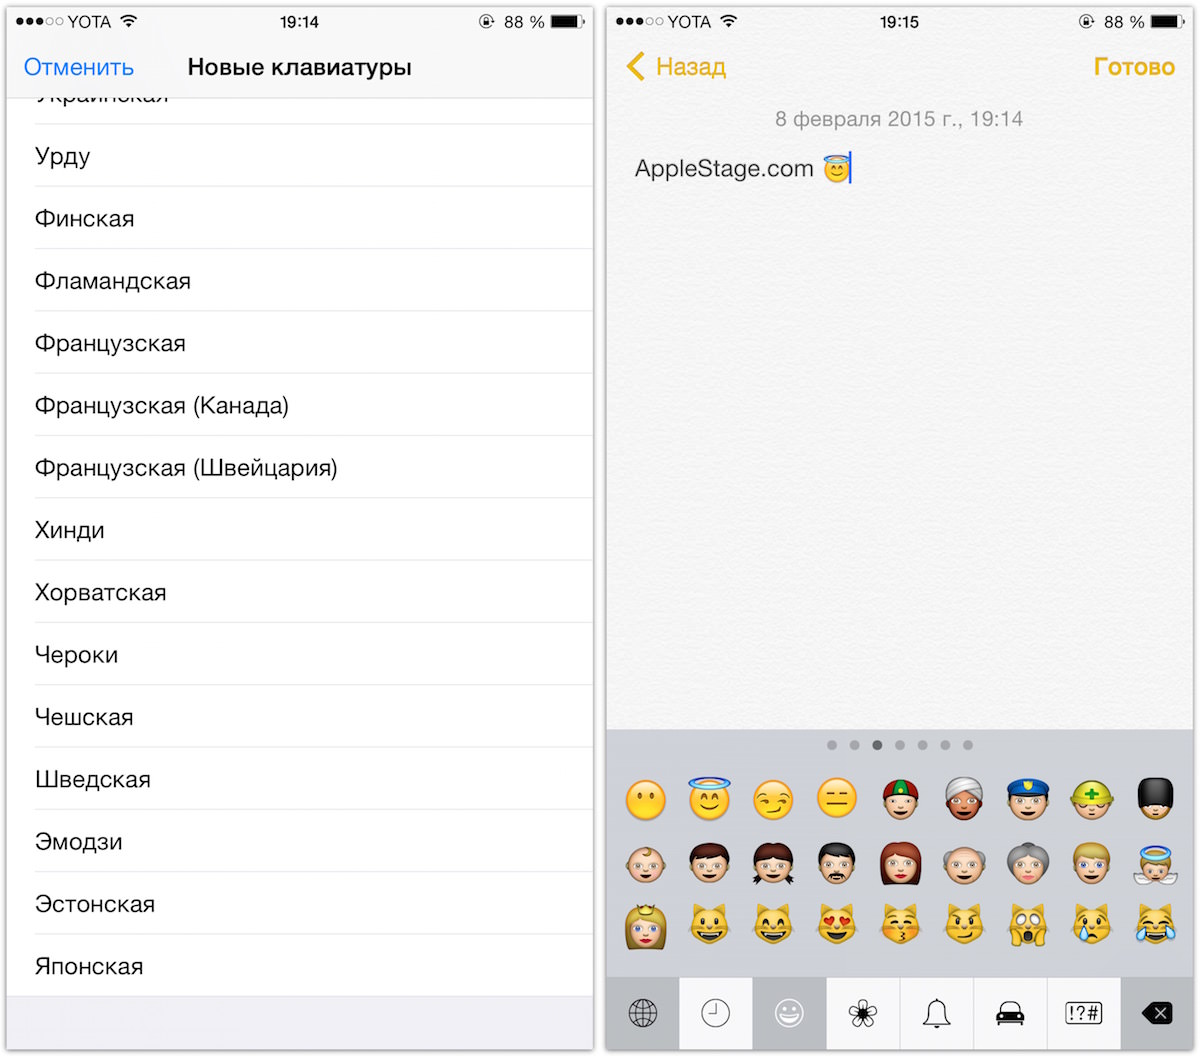 emoji iOS 7 iOS 8 Apple App Store iPhone iPad iPod Touch Guide 2